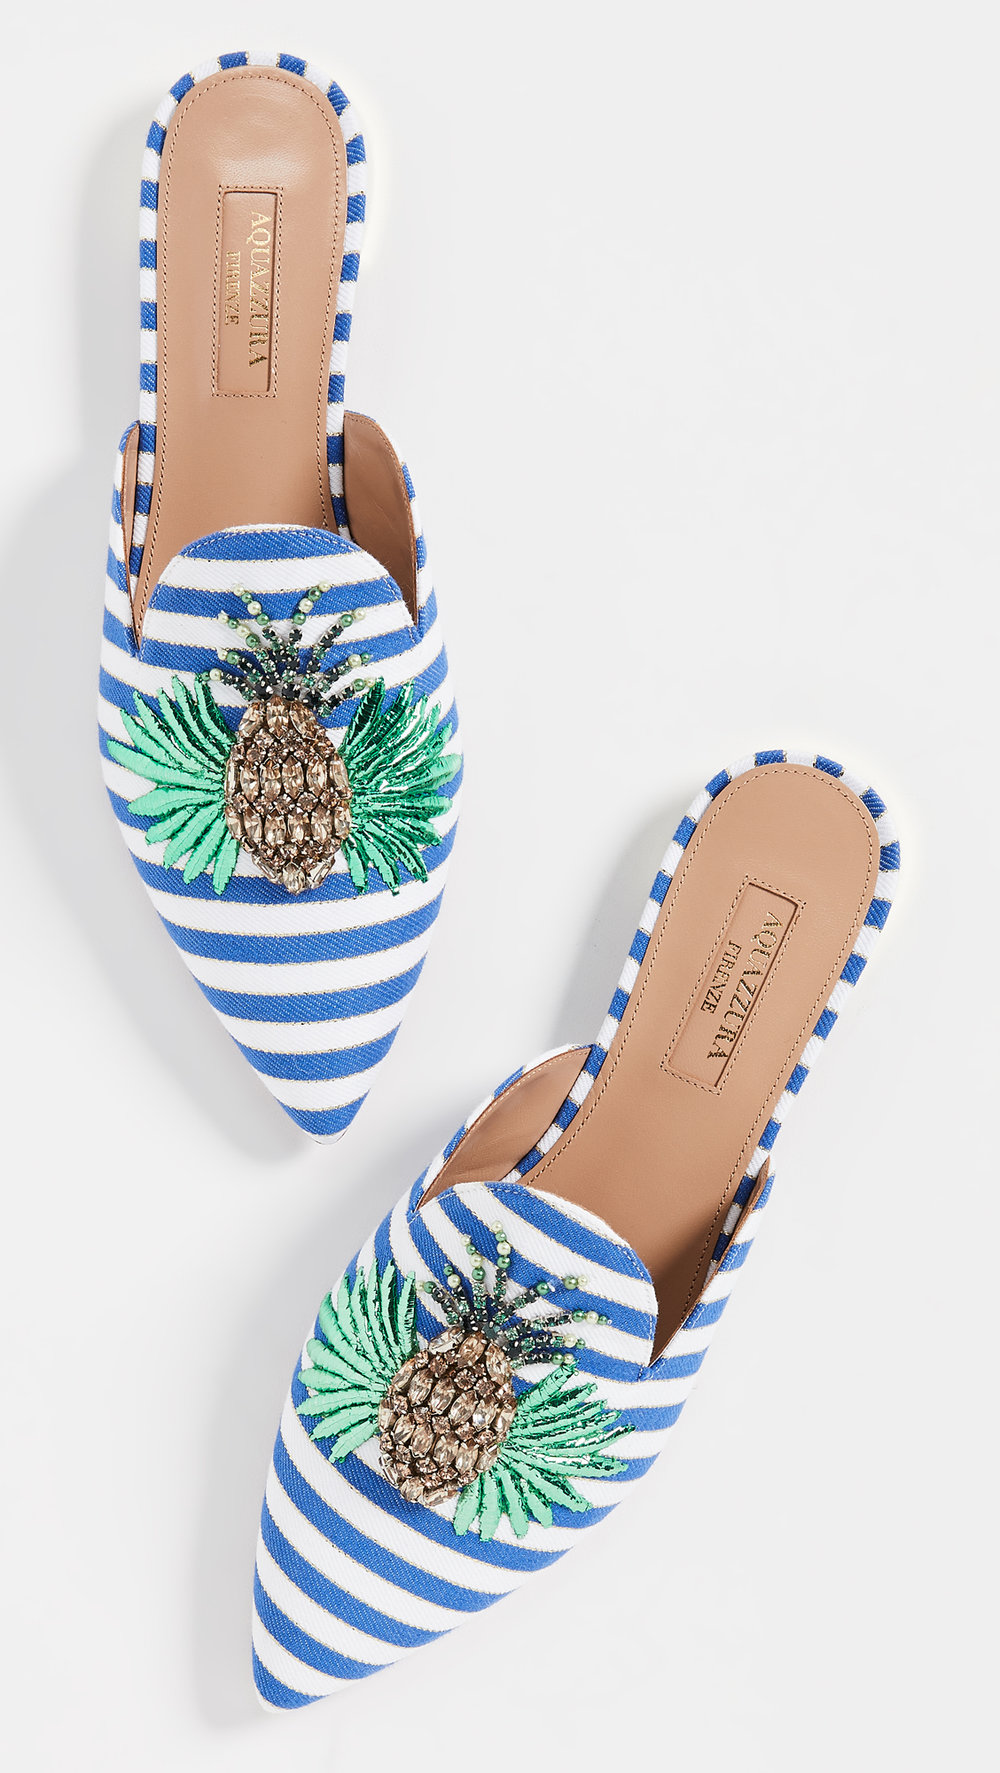 Aquazzara Pineapple Flats